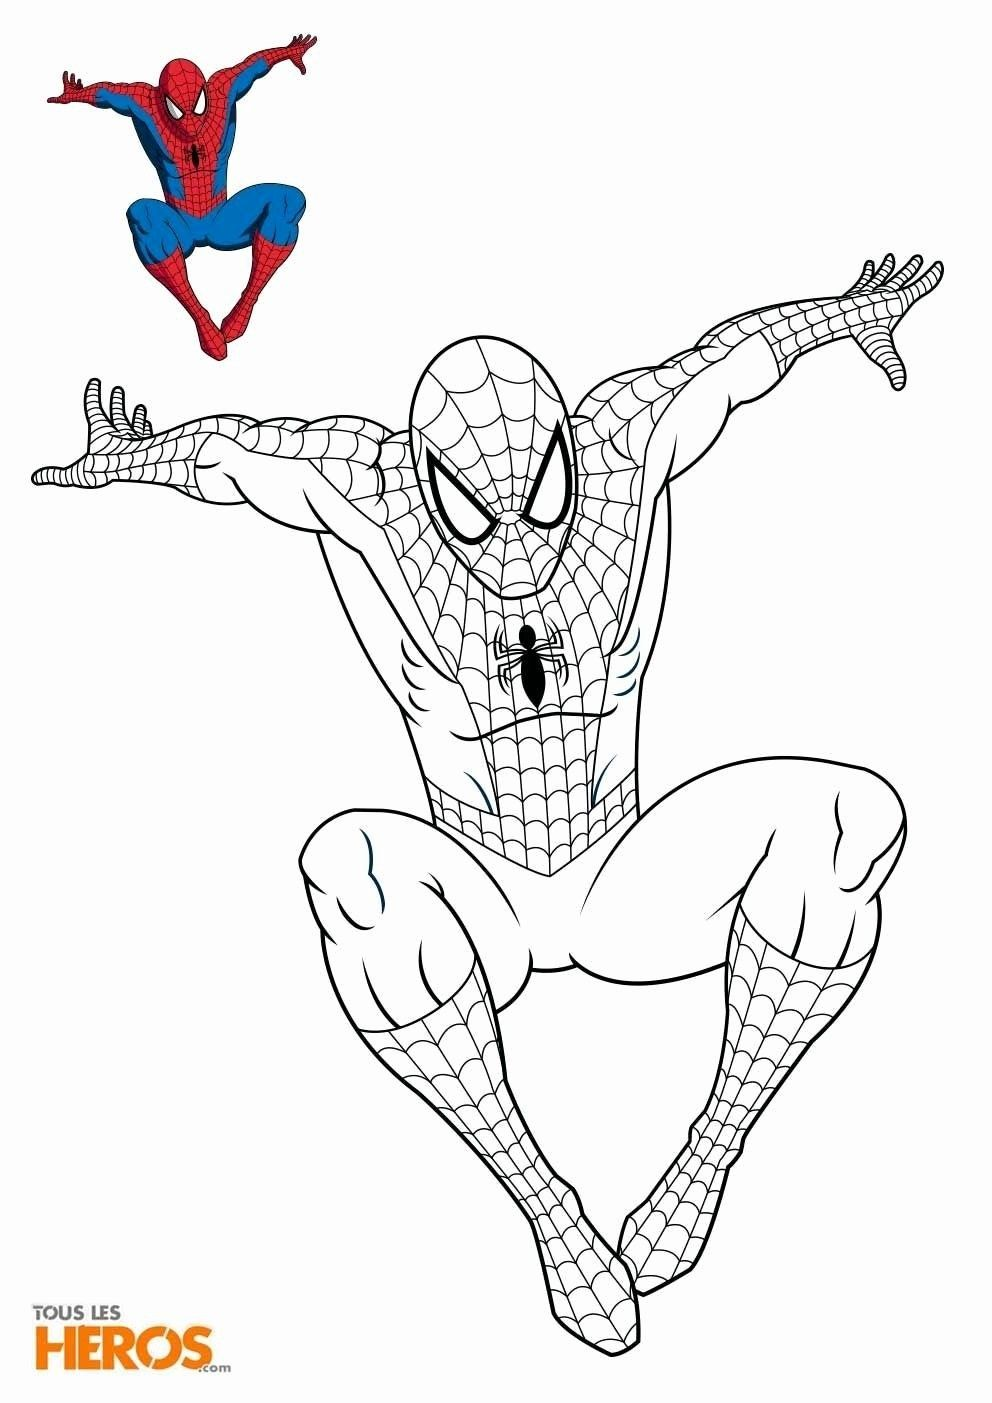 Cartoons Coloring Book Pdf Inspirational 10 Awesome Marvel Colouring Book In 2020 Avengers Coloring Pages Marvel Coloring Avengers Coloring